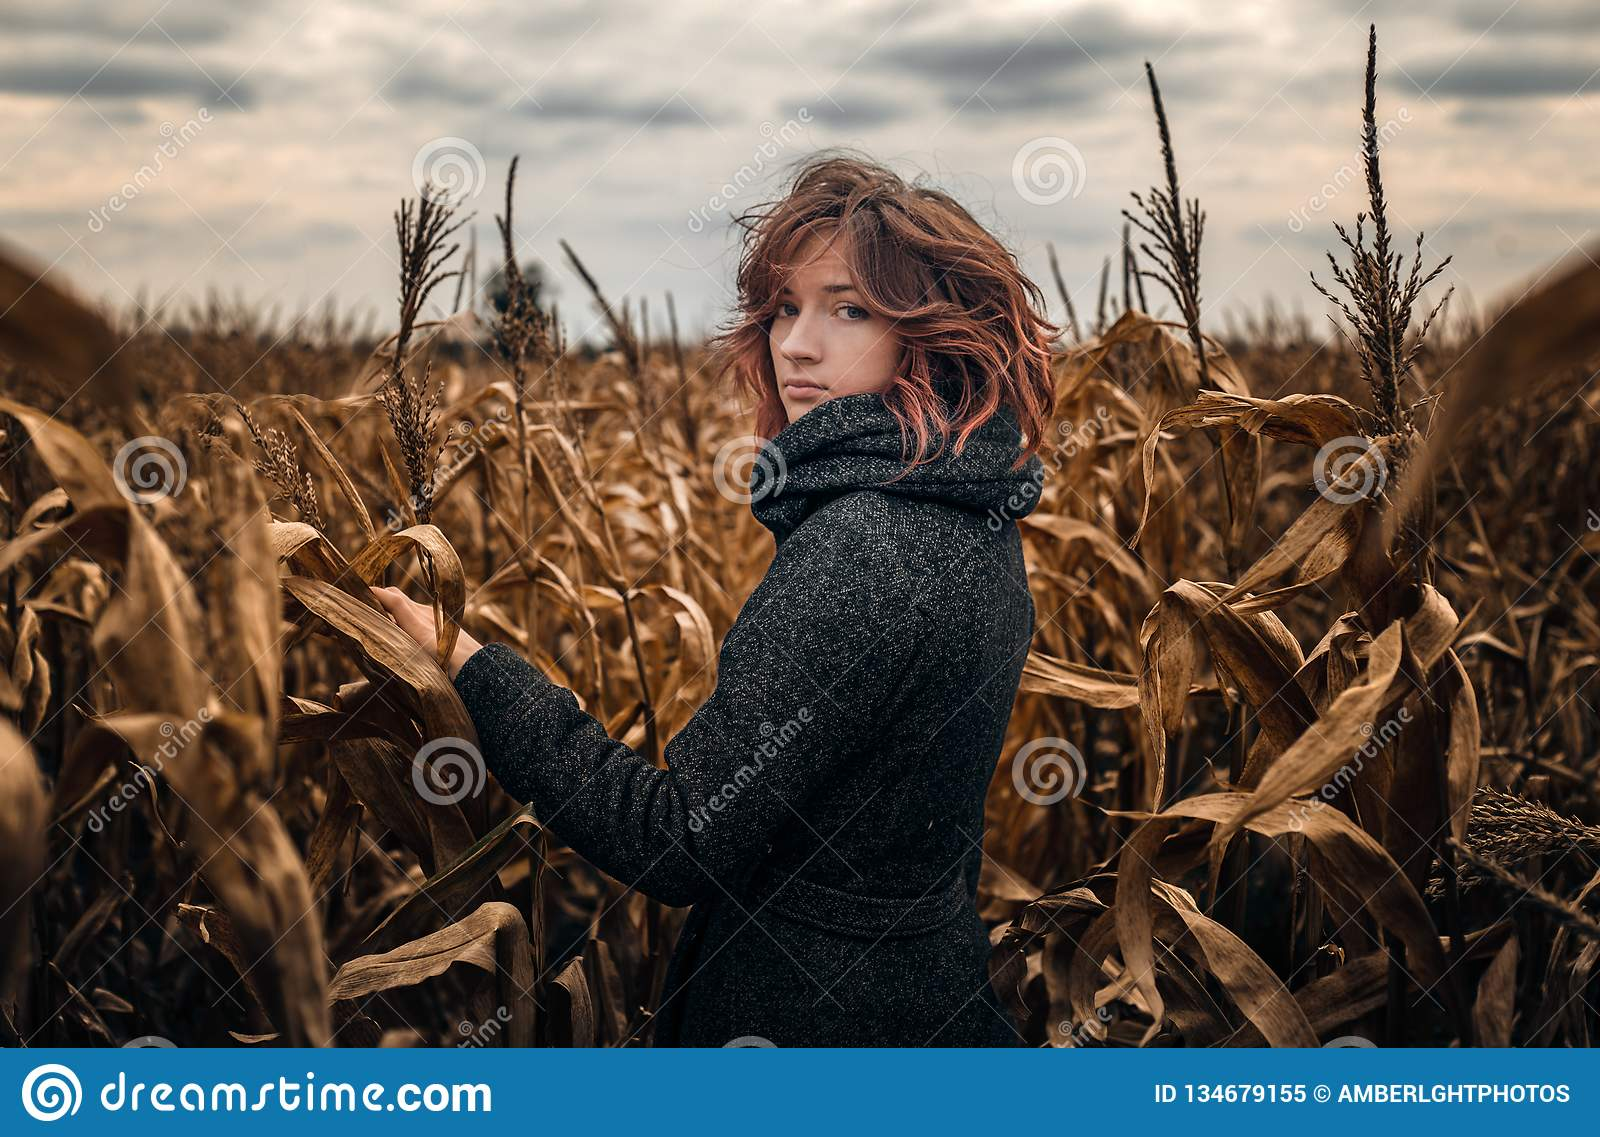 A Girl With Red Curly Hair In A Gray Coat Stock Image - Image of